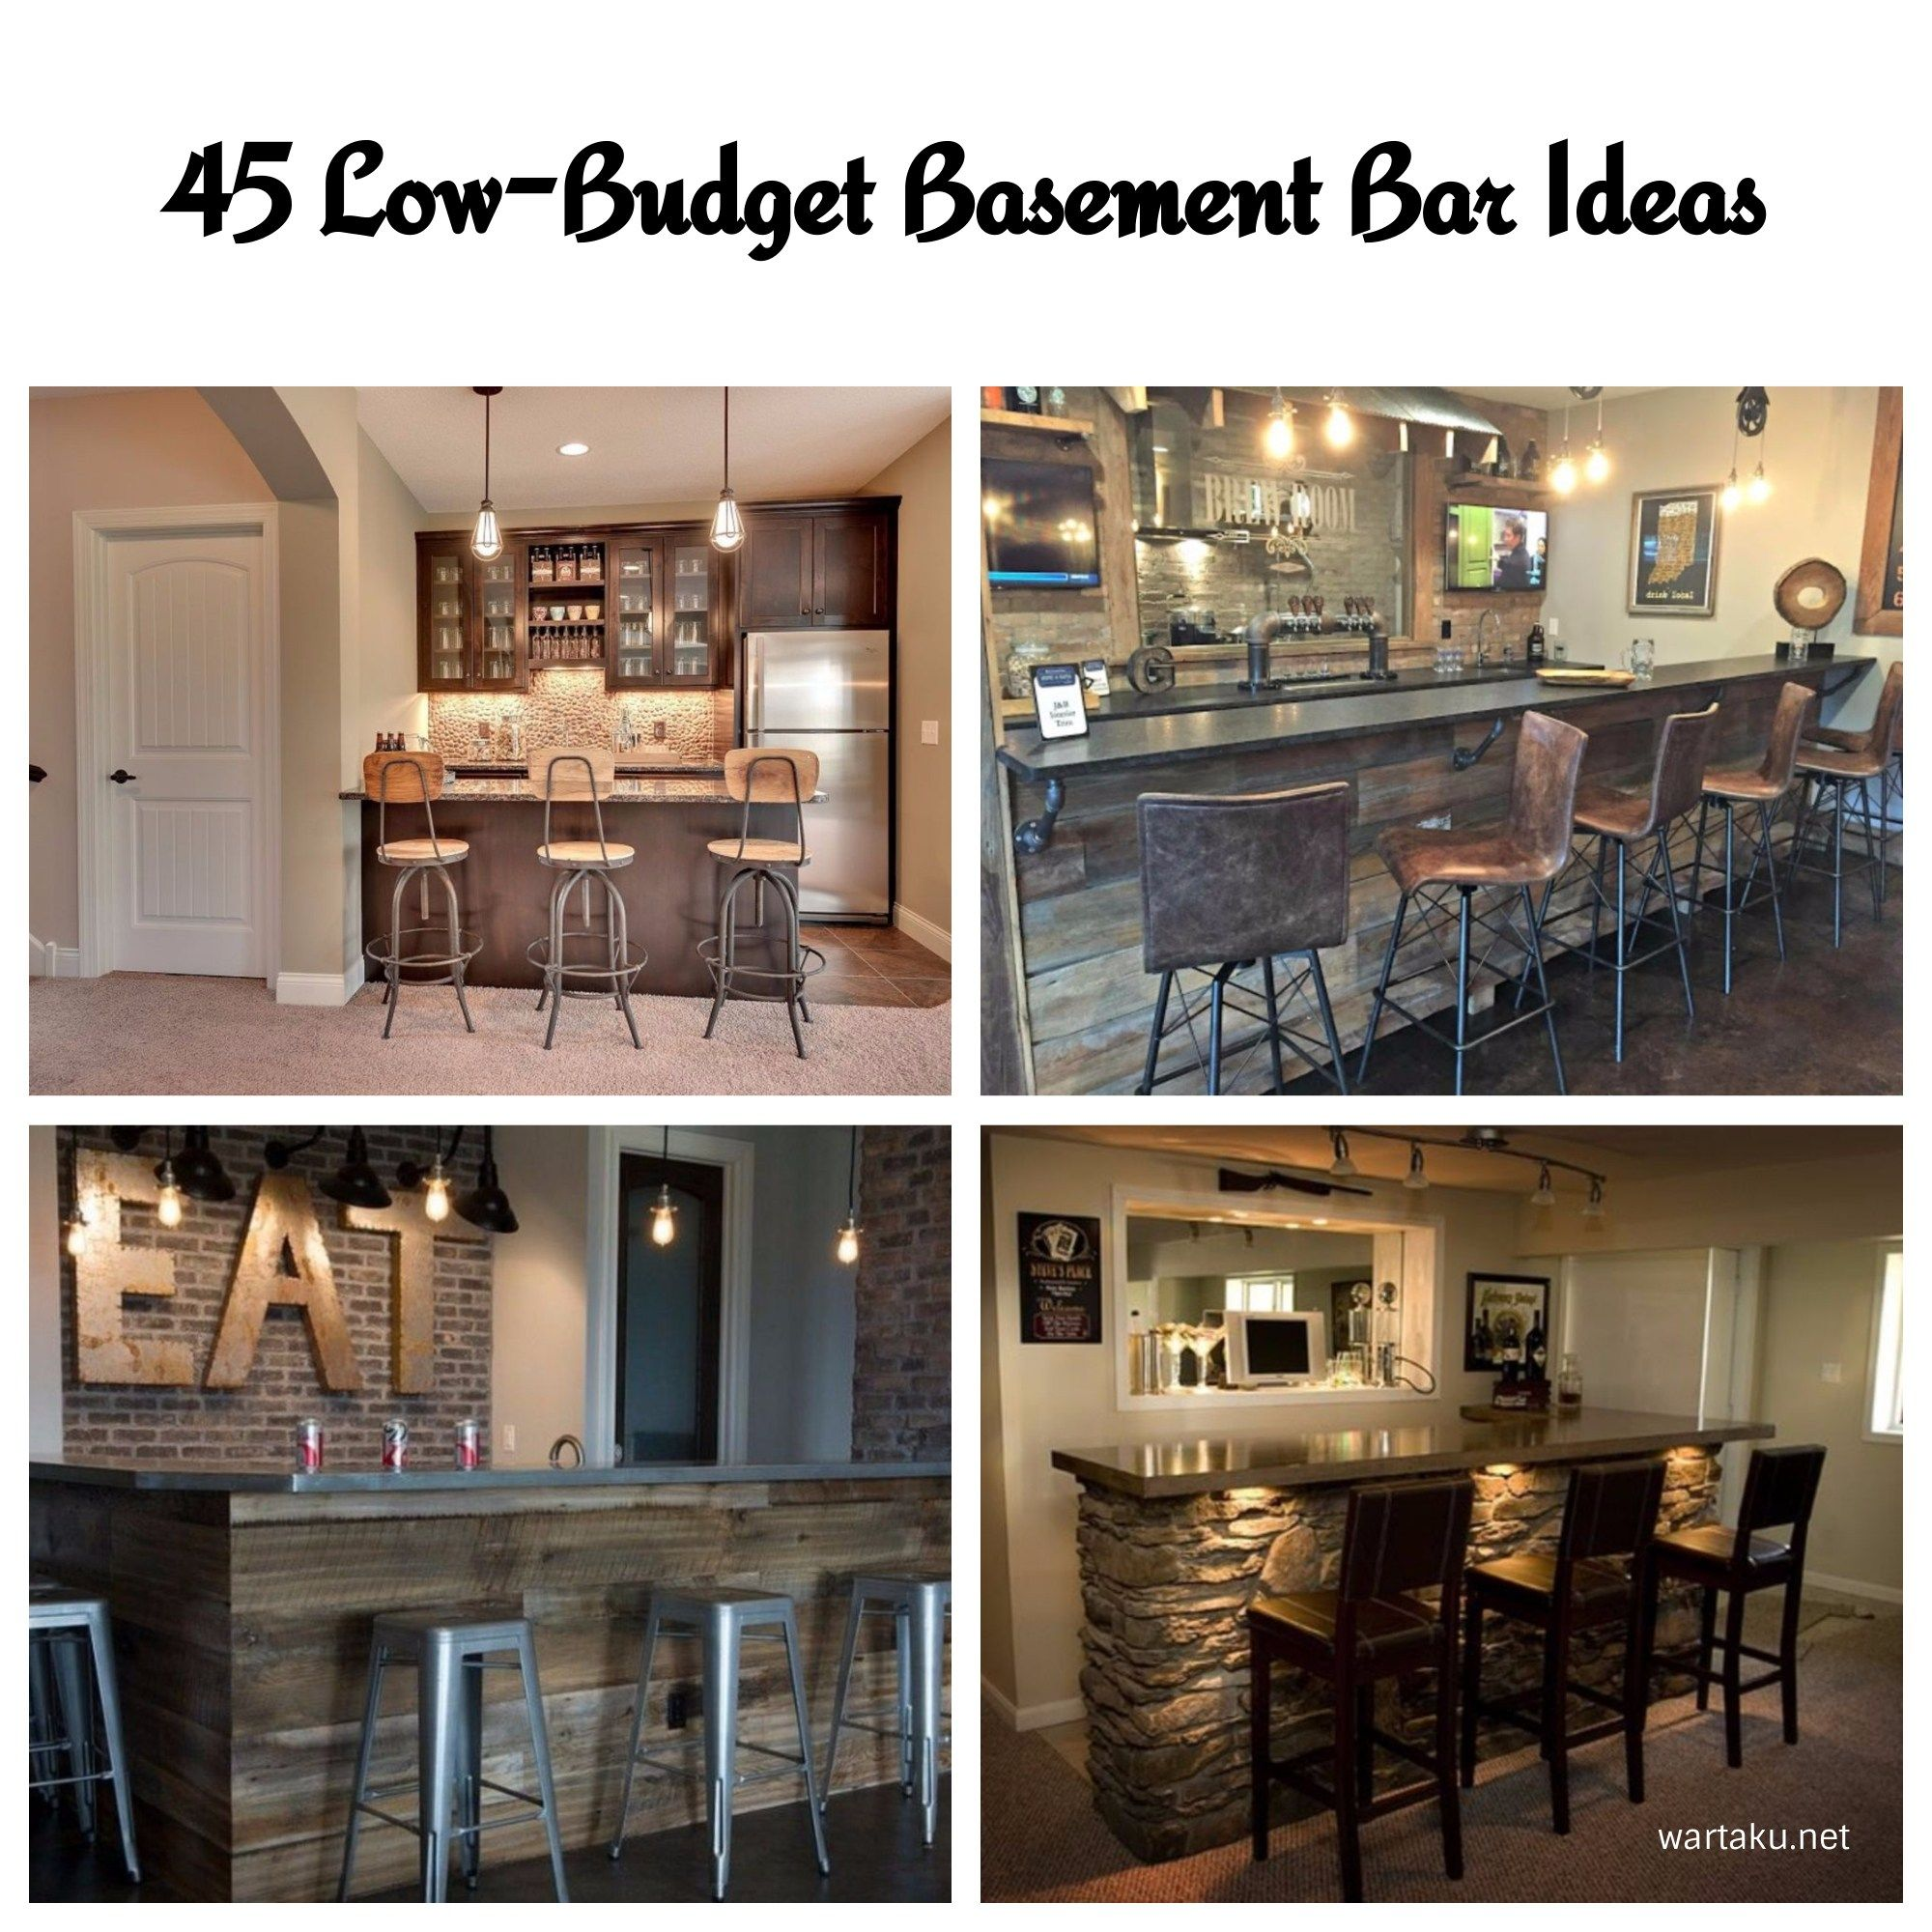 45 low budget basement bar ideas basements budgeting and bar